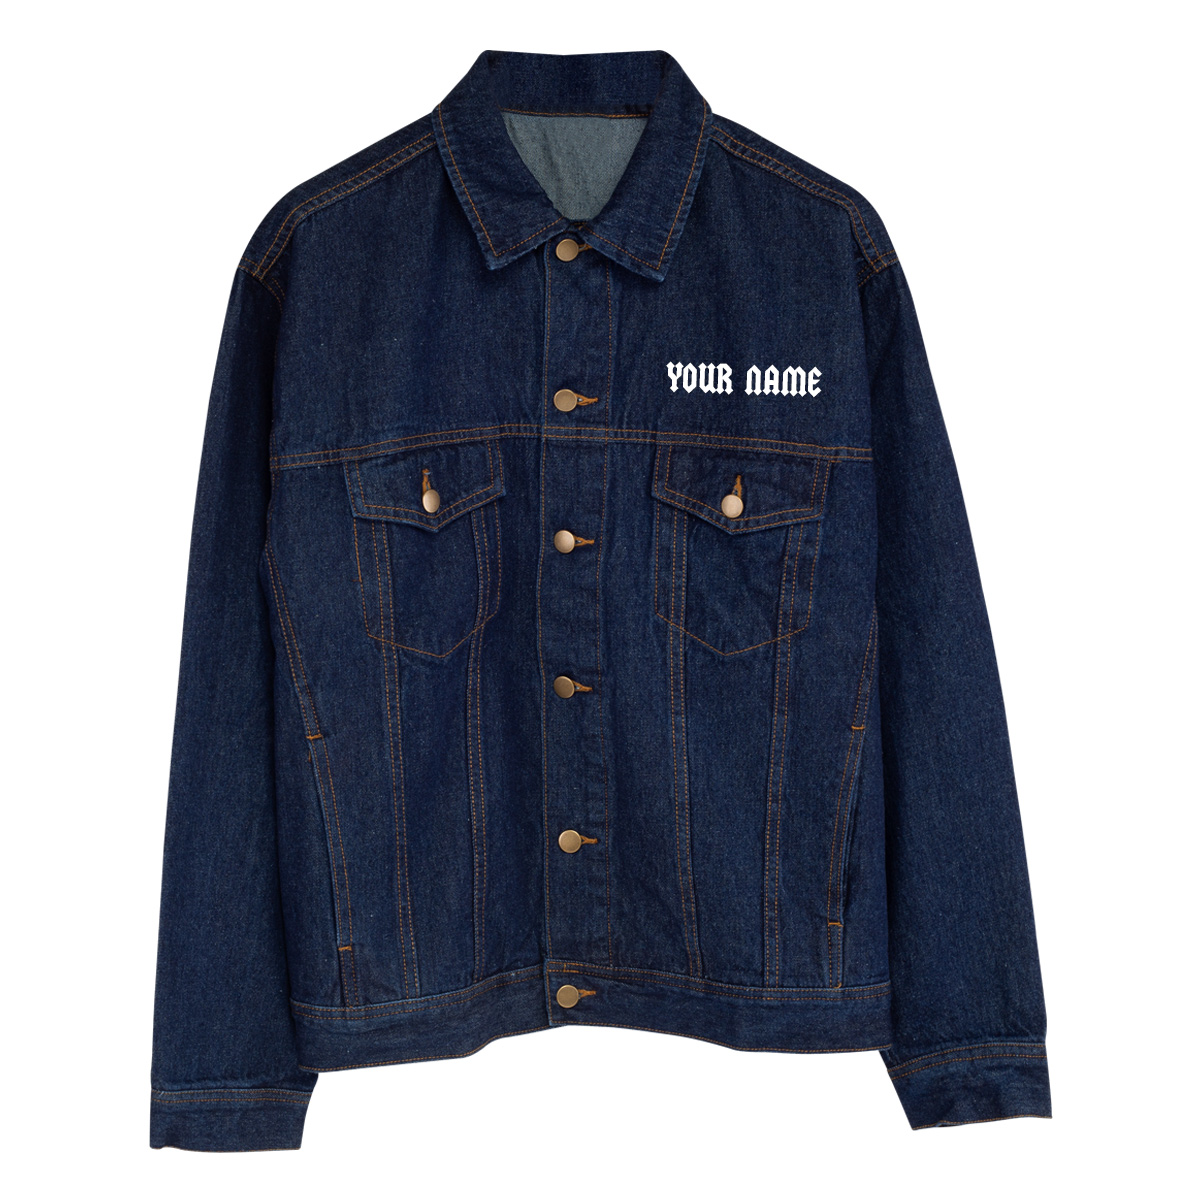 Hells Bells Personalized Jean Jacket